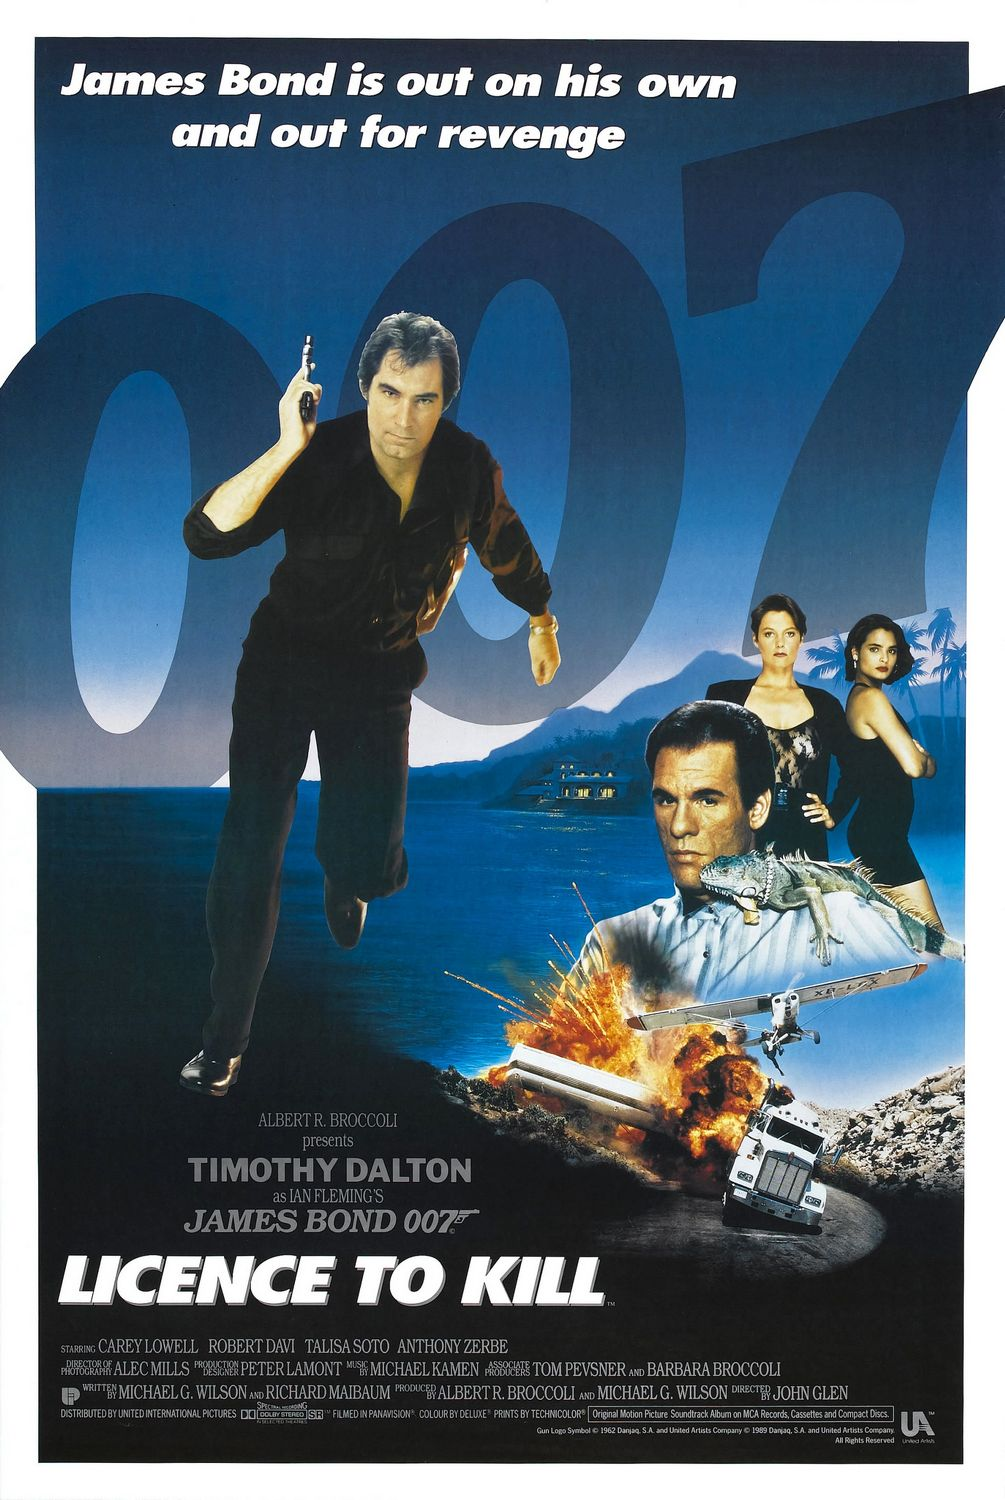 Poster for License to Kill